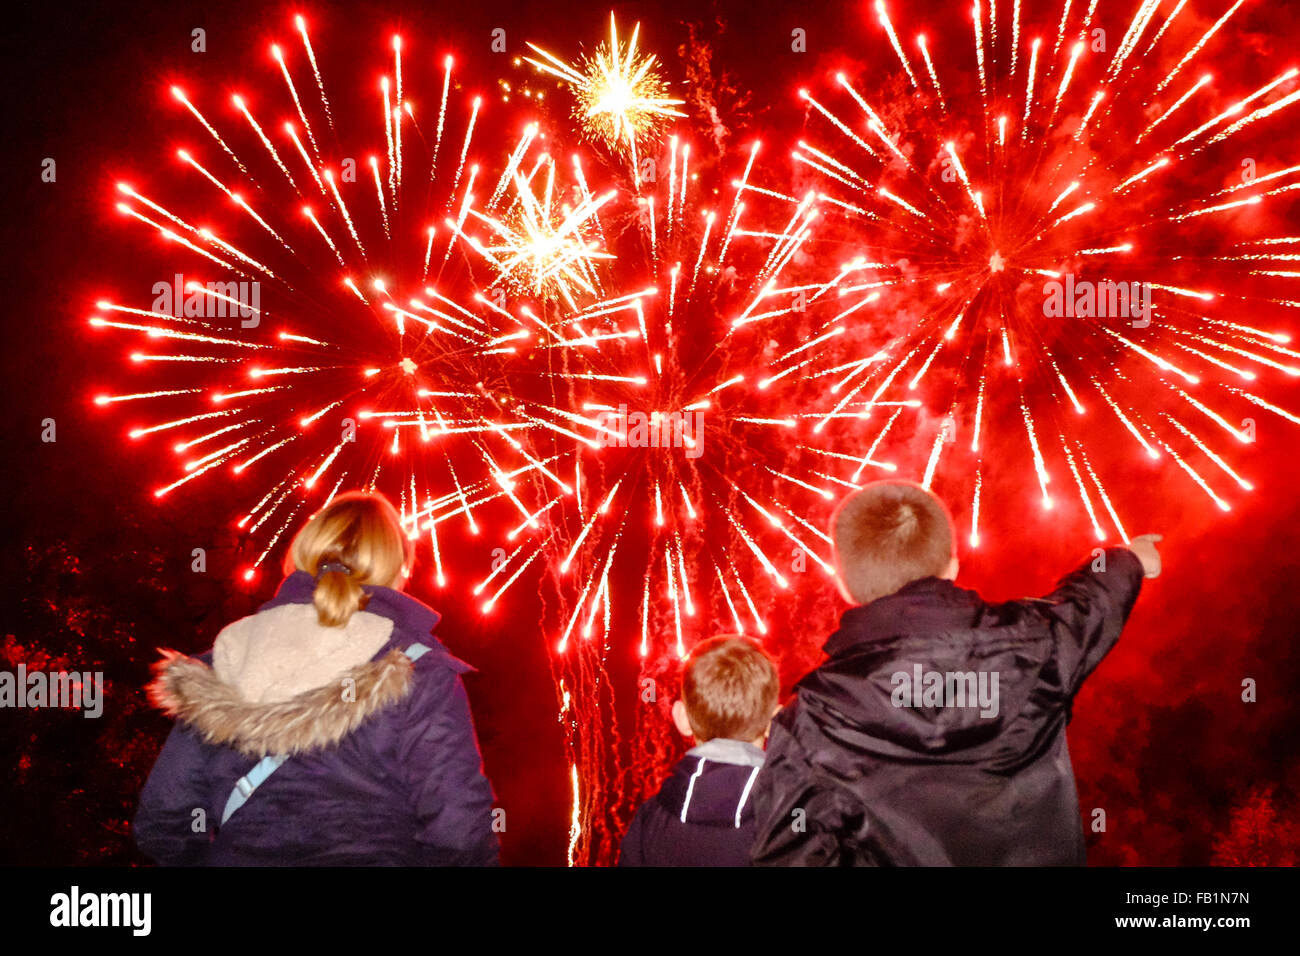 Guy Fawkes night fireworks. - Stock Image